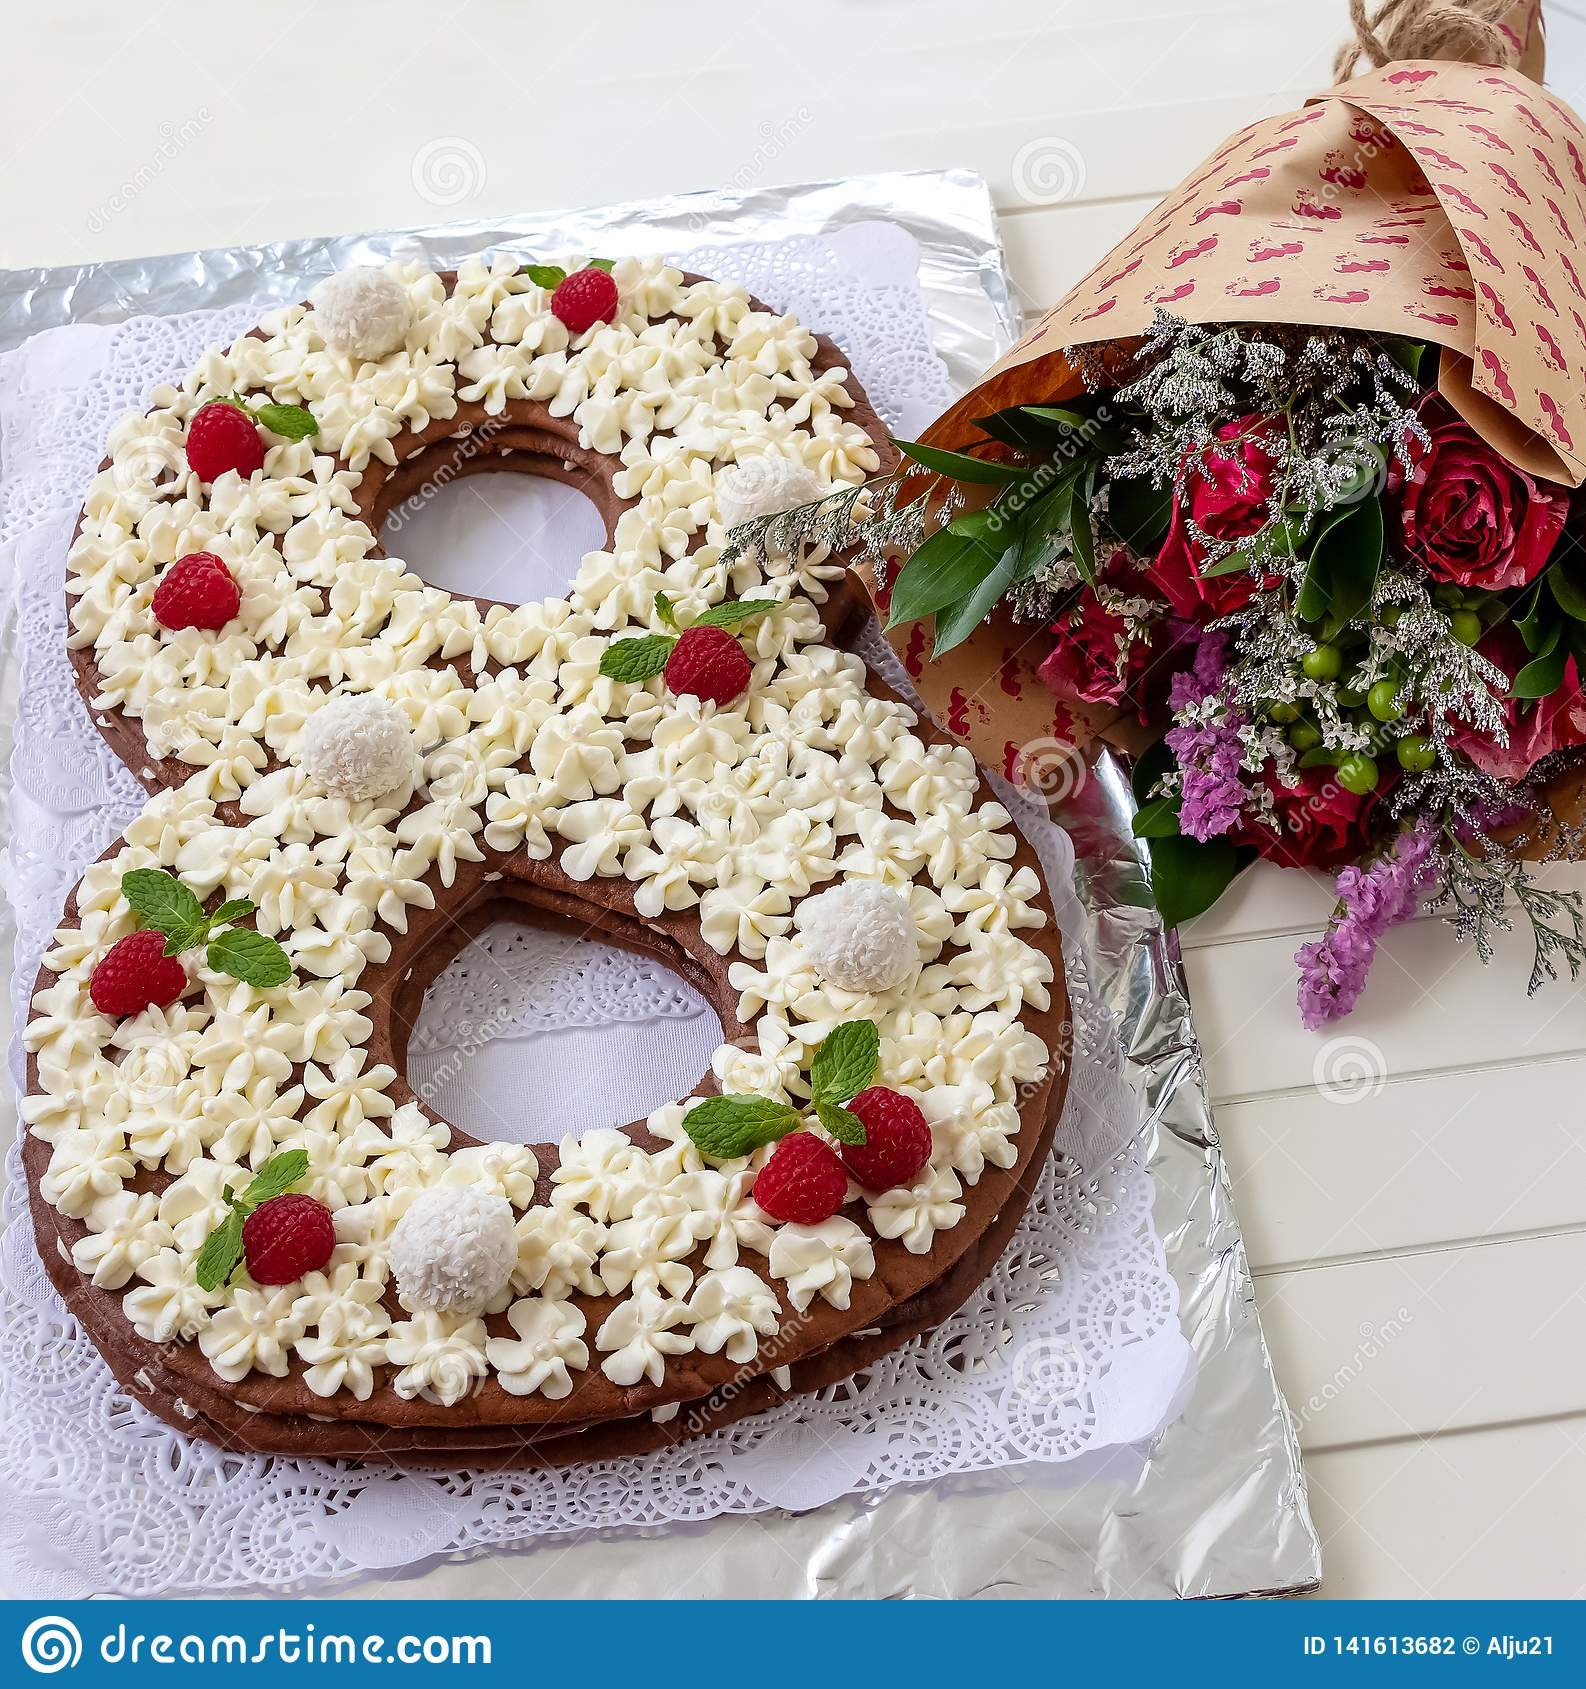 Big Number Cake And Red Rose Flower Shape Of 8 Decorated White Creamcheese Raspberry Coconut Candy